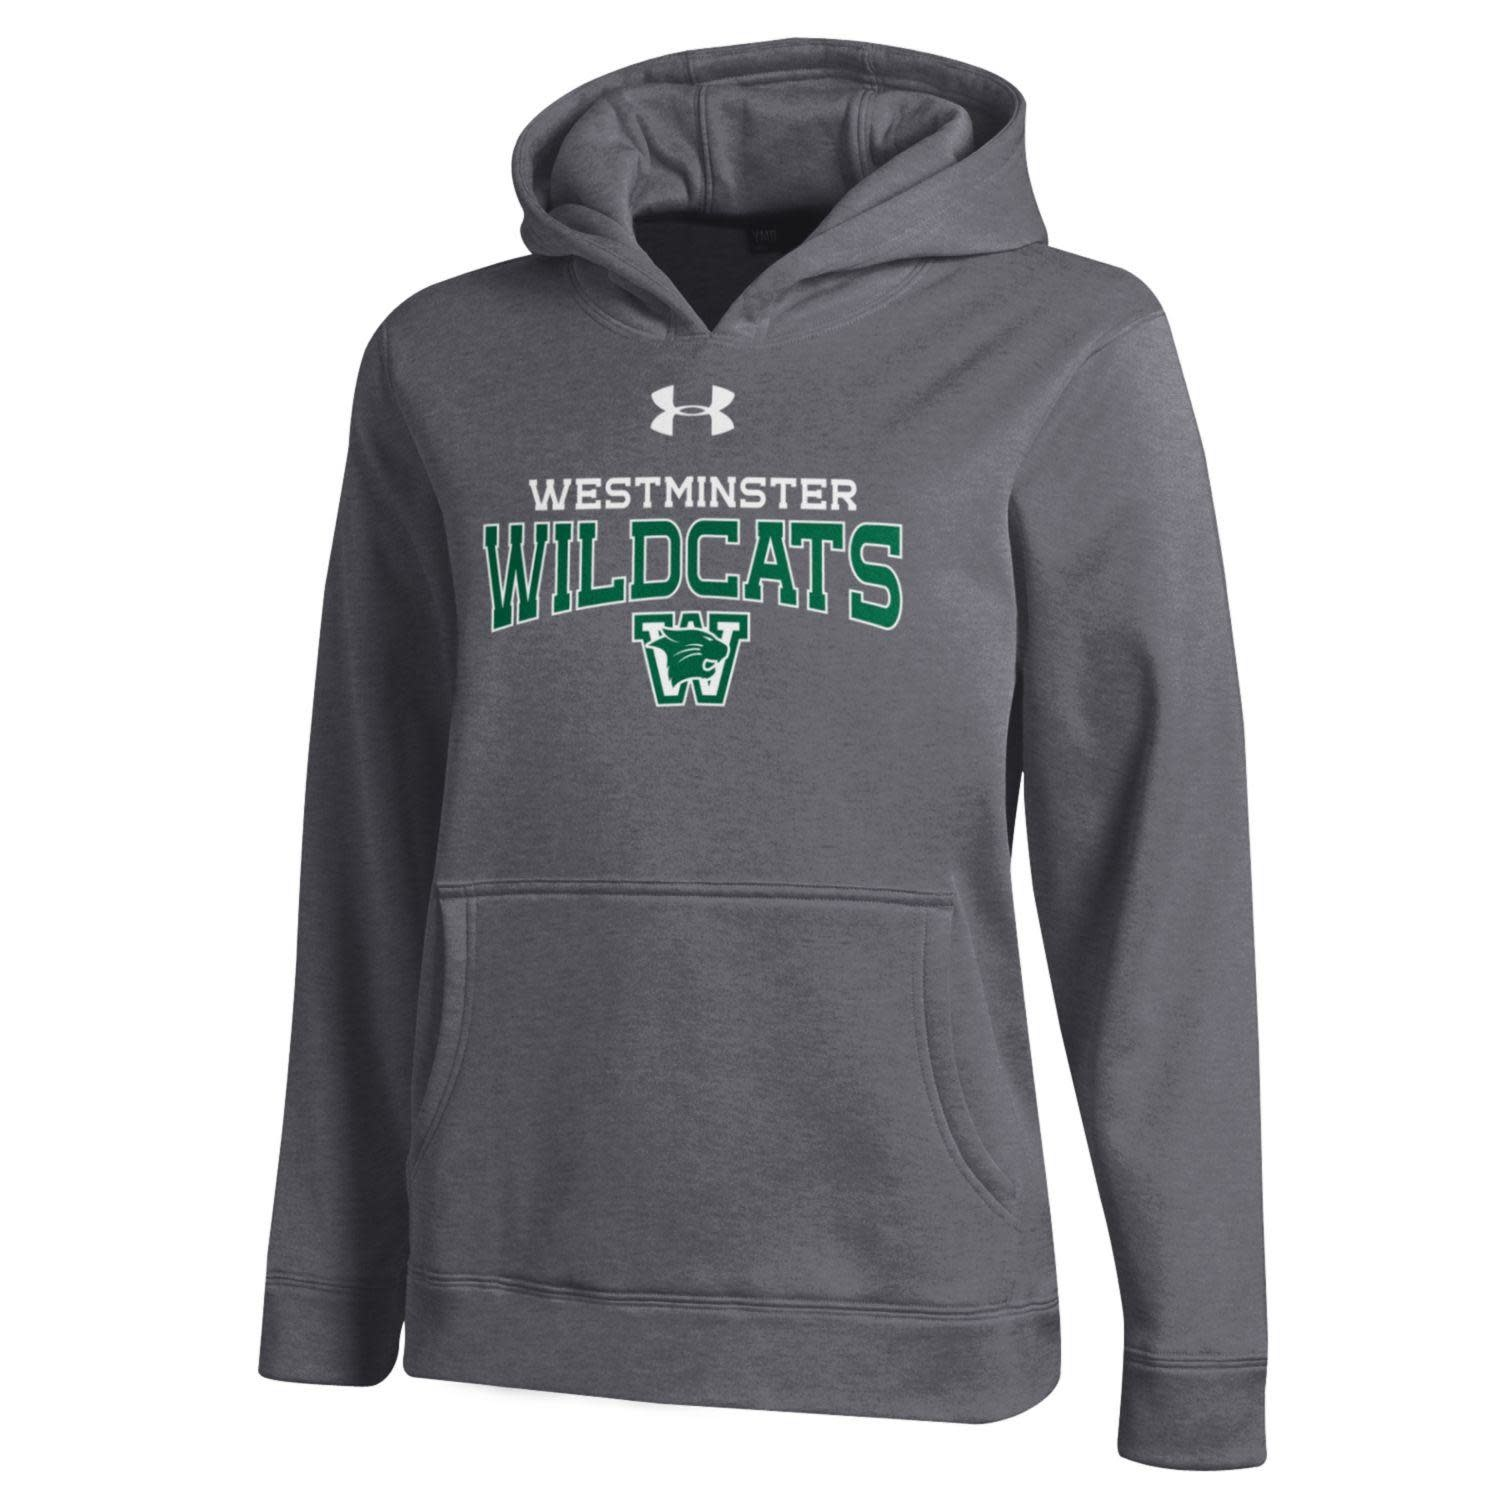 Under Armour Sweatshirt: UA Youth Small Performance Hoody - Carbon Heather